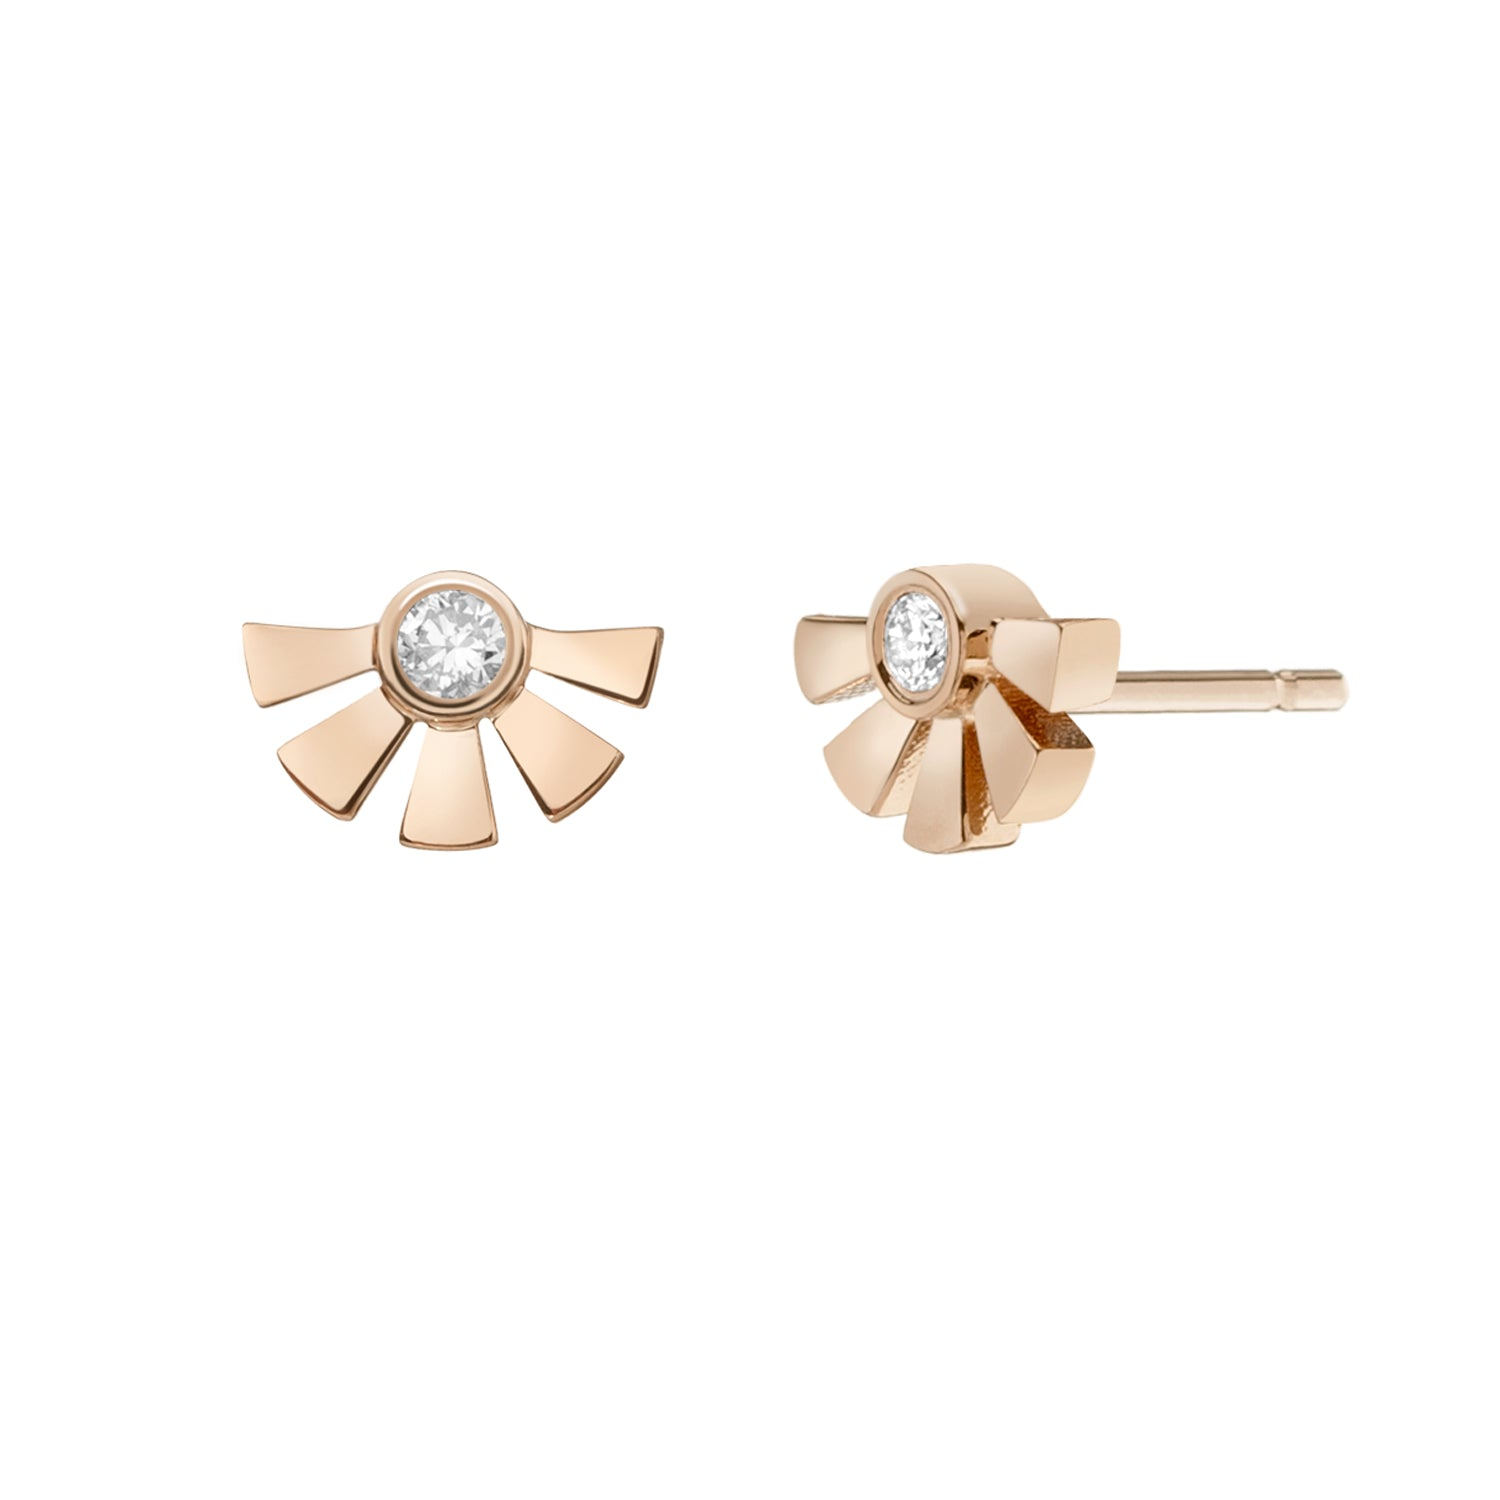 Helia Studs - Single White Diamond